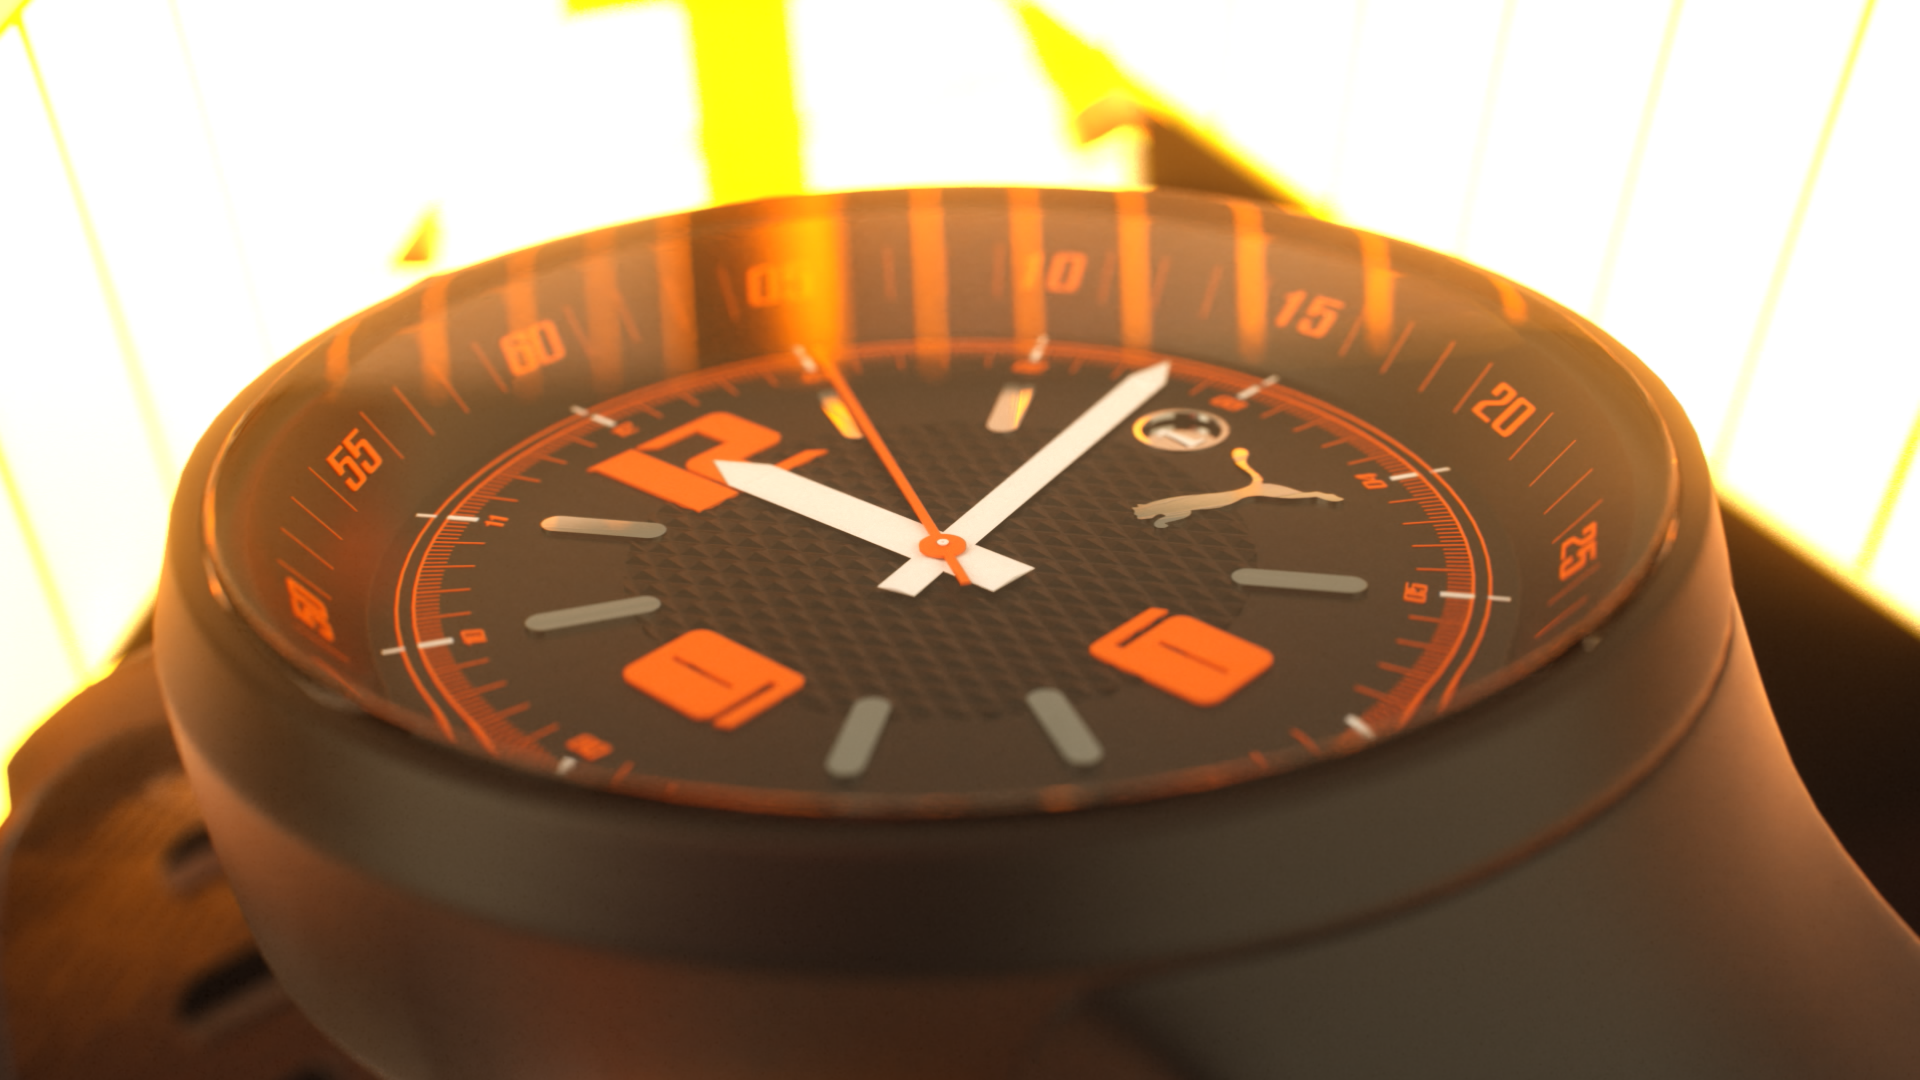 NUTS_WATCH_1_WATCH EDIT_2019-03-07_12.06.24.png